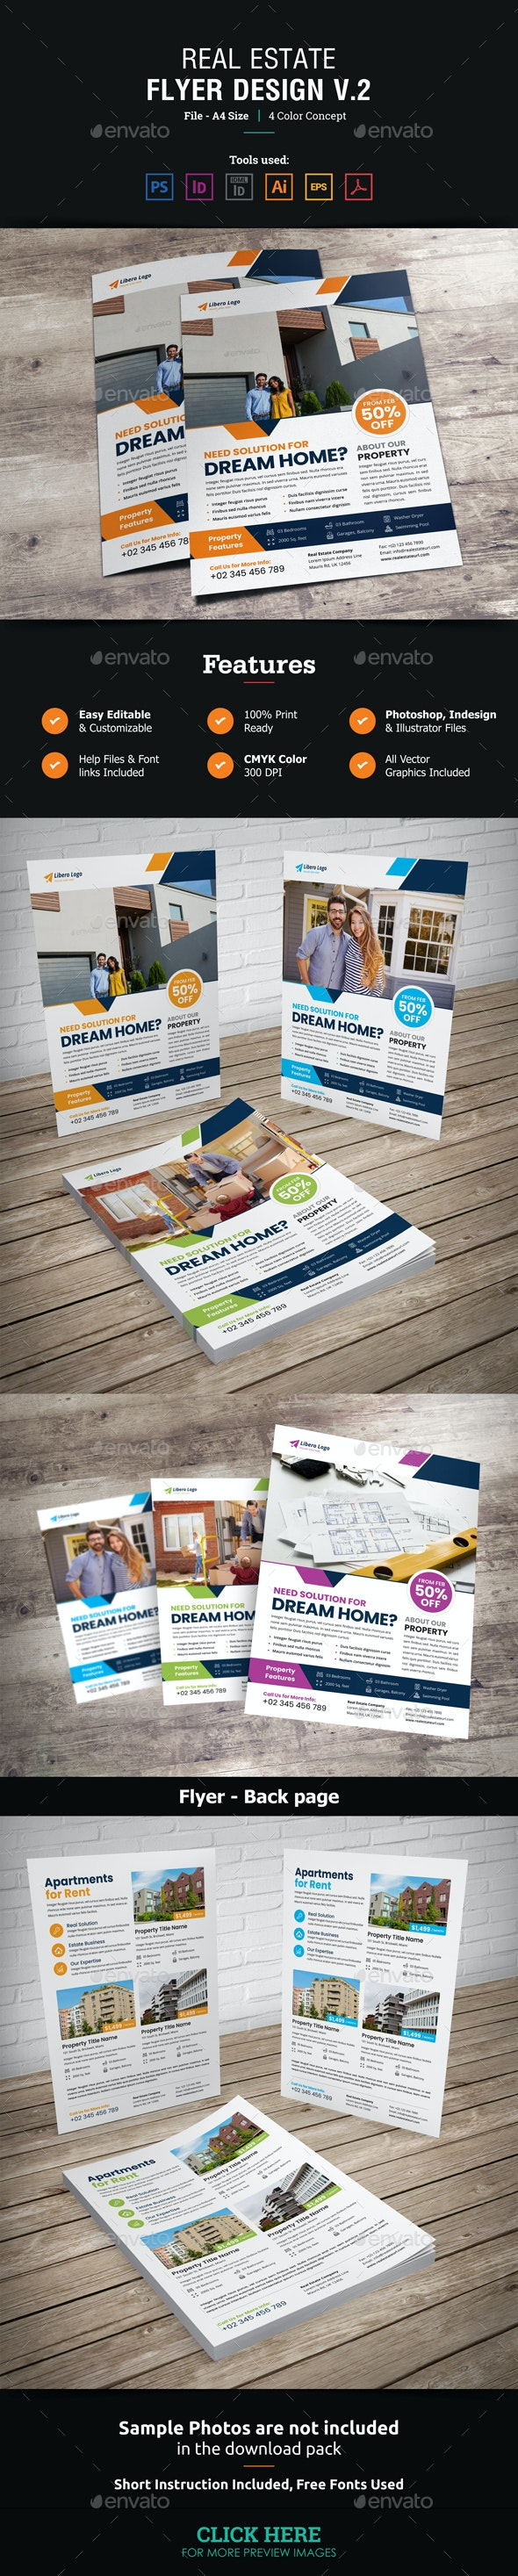 Real Estate Flyer Design v2 - Corporate Flyers